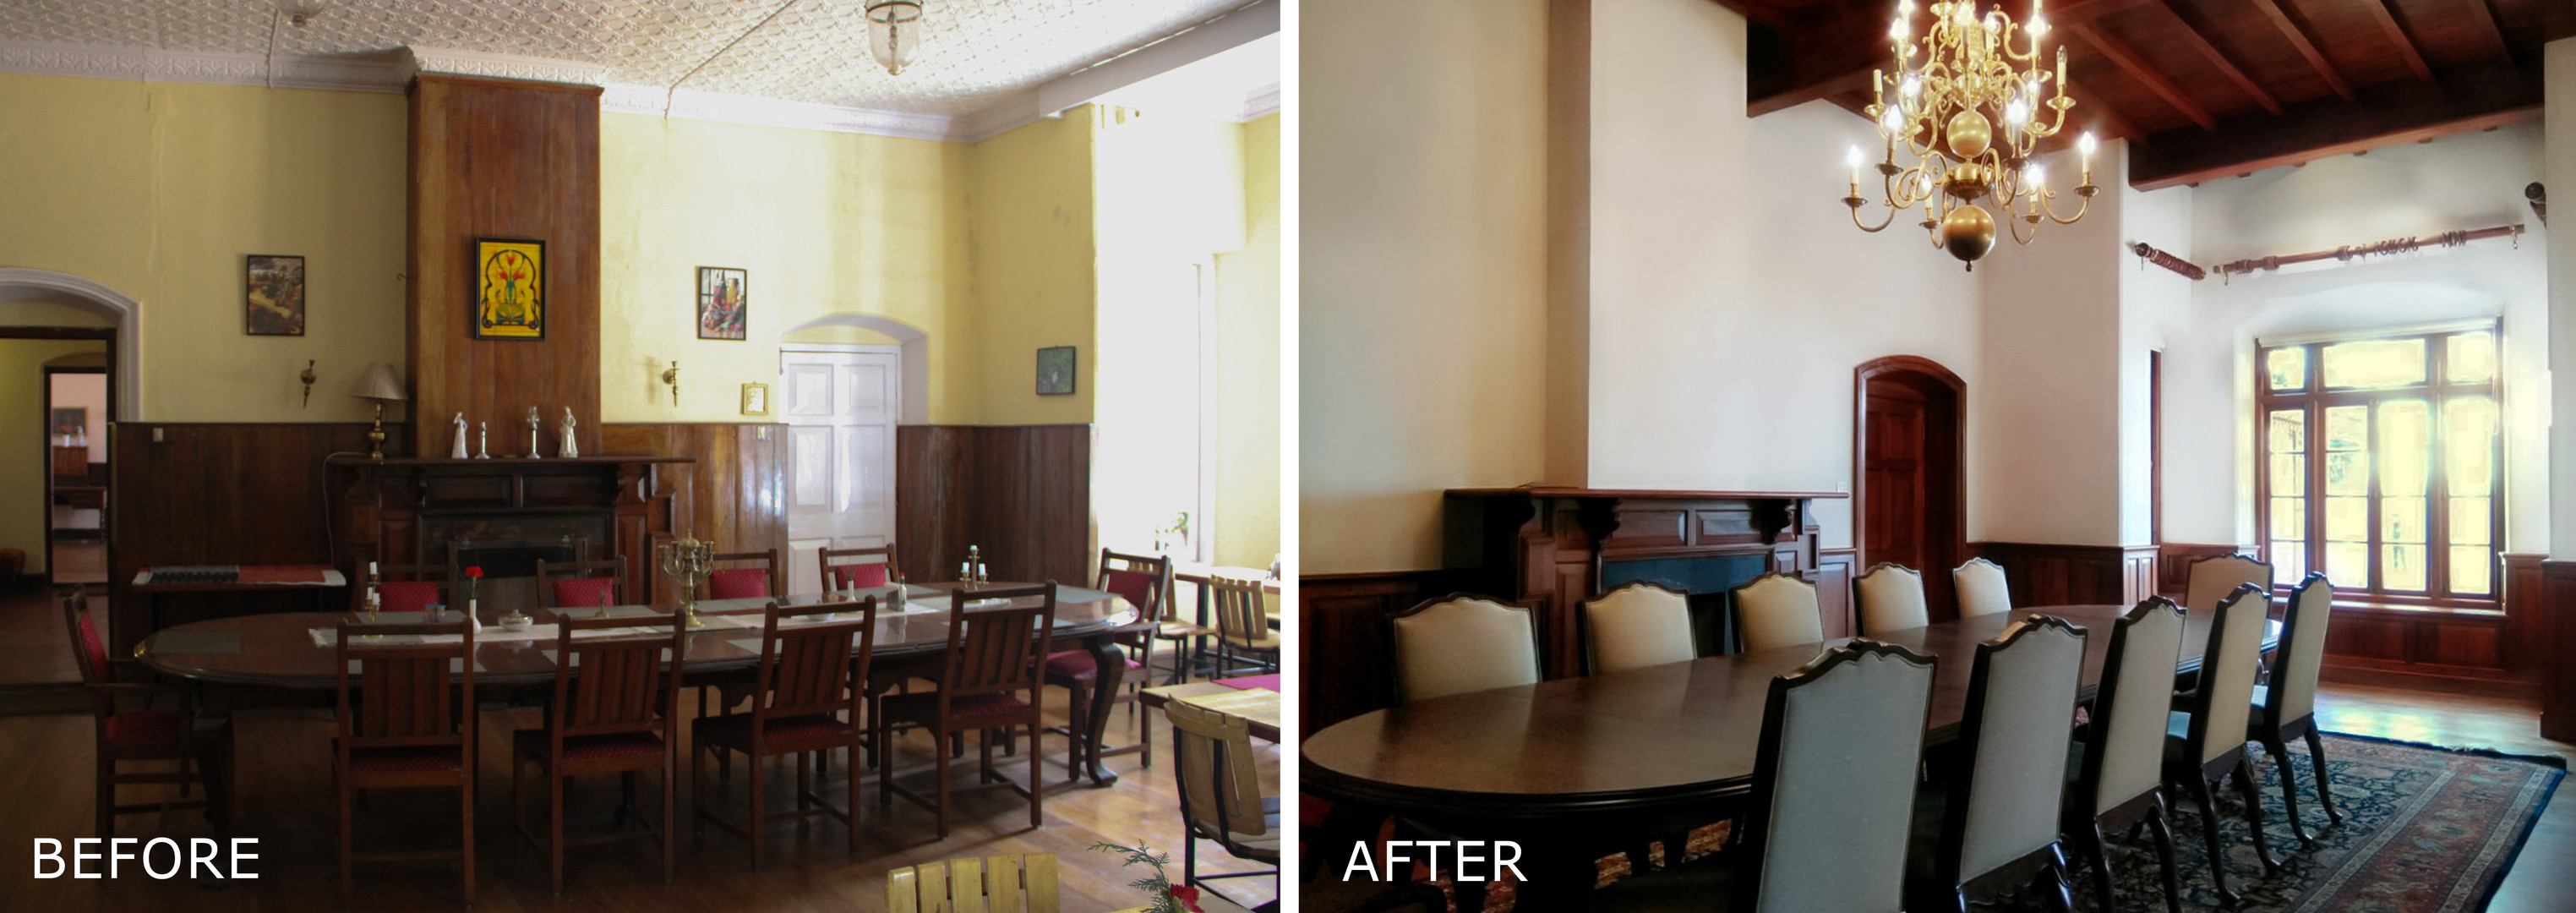 Before and After - Interior Dining room